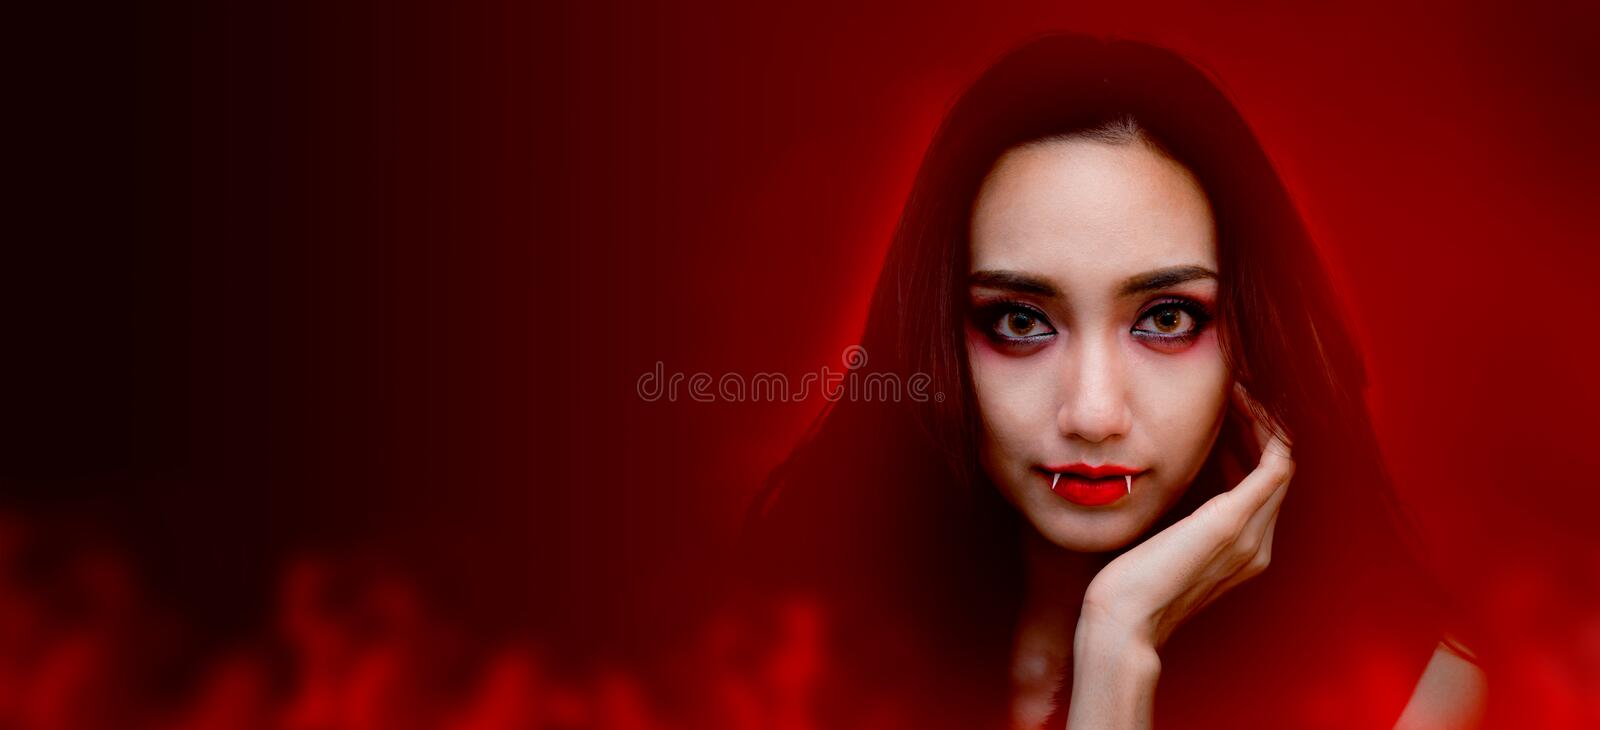 Happy Halloween. Beautiful woman costume and makeup. Copy space for trick or treat in autumn season stock image